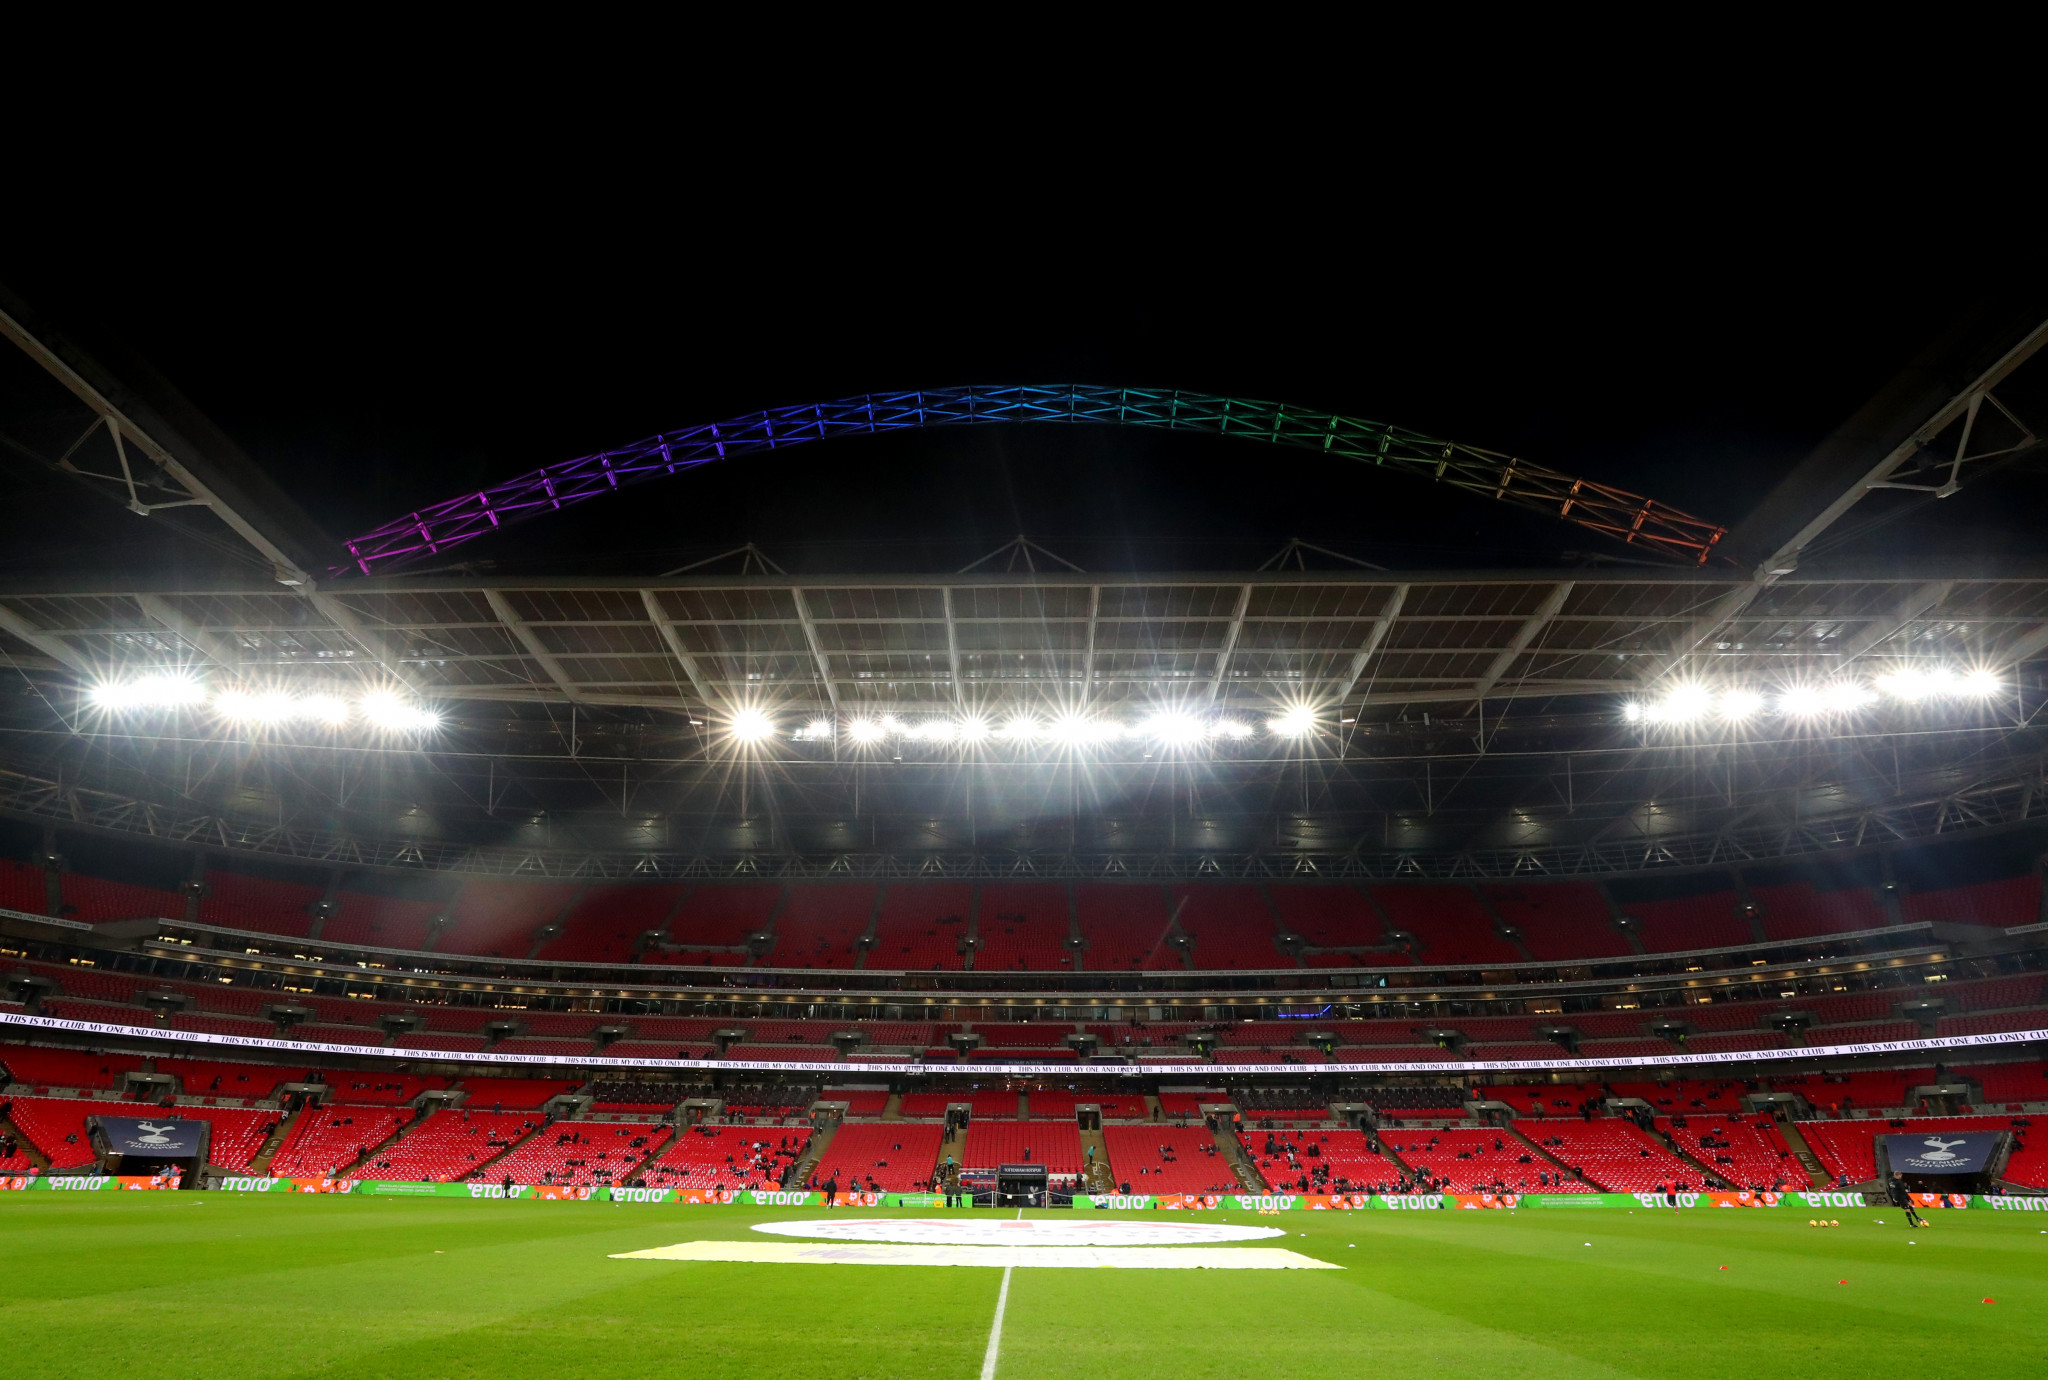 London has been touted to hold the UEFA European Championship in its entirety, with Wembley already set to host the semi-finals and final ©Getty Images